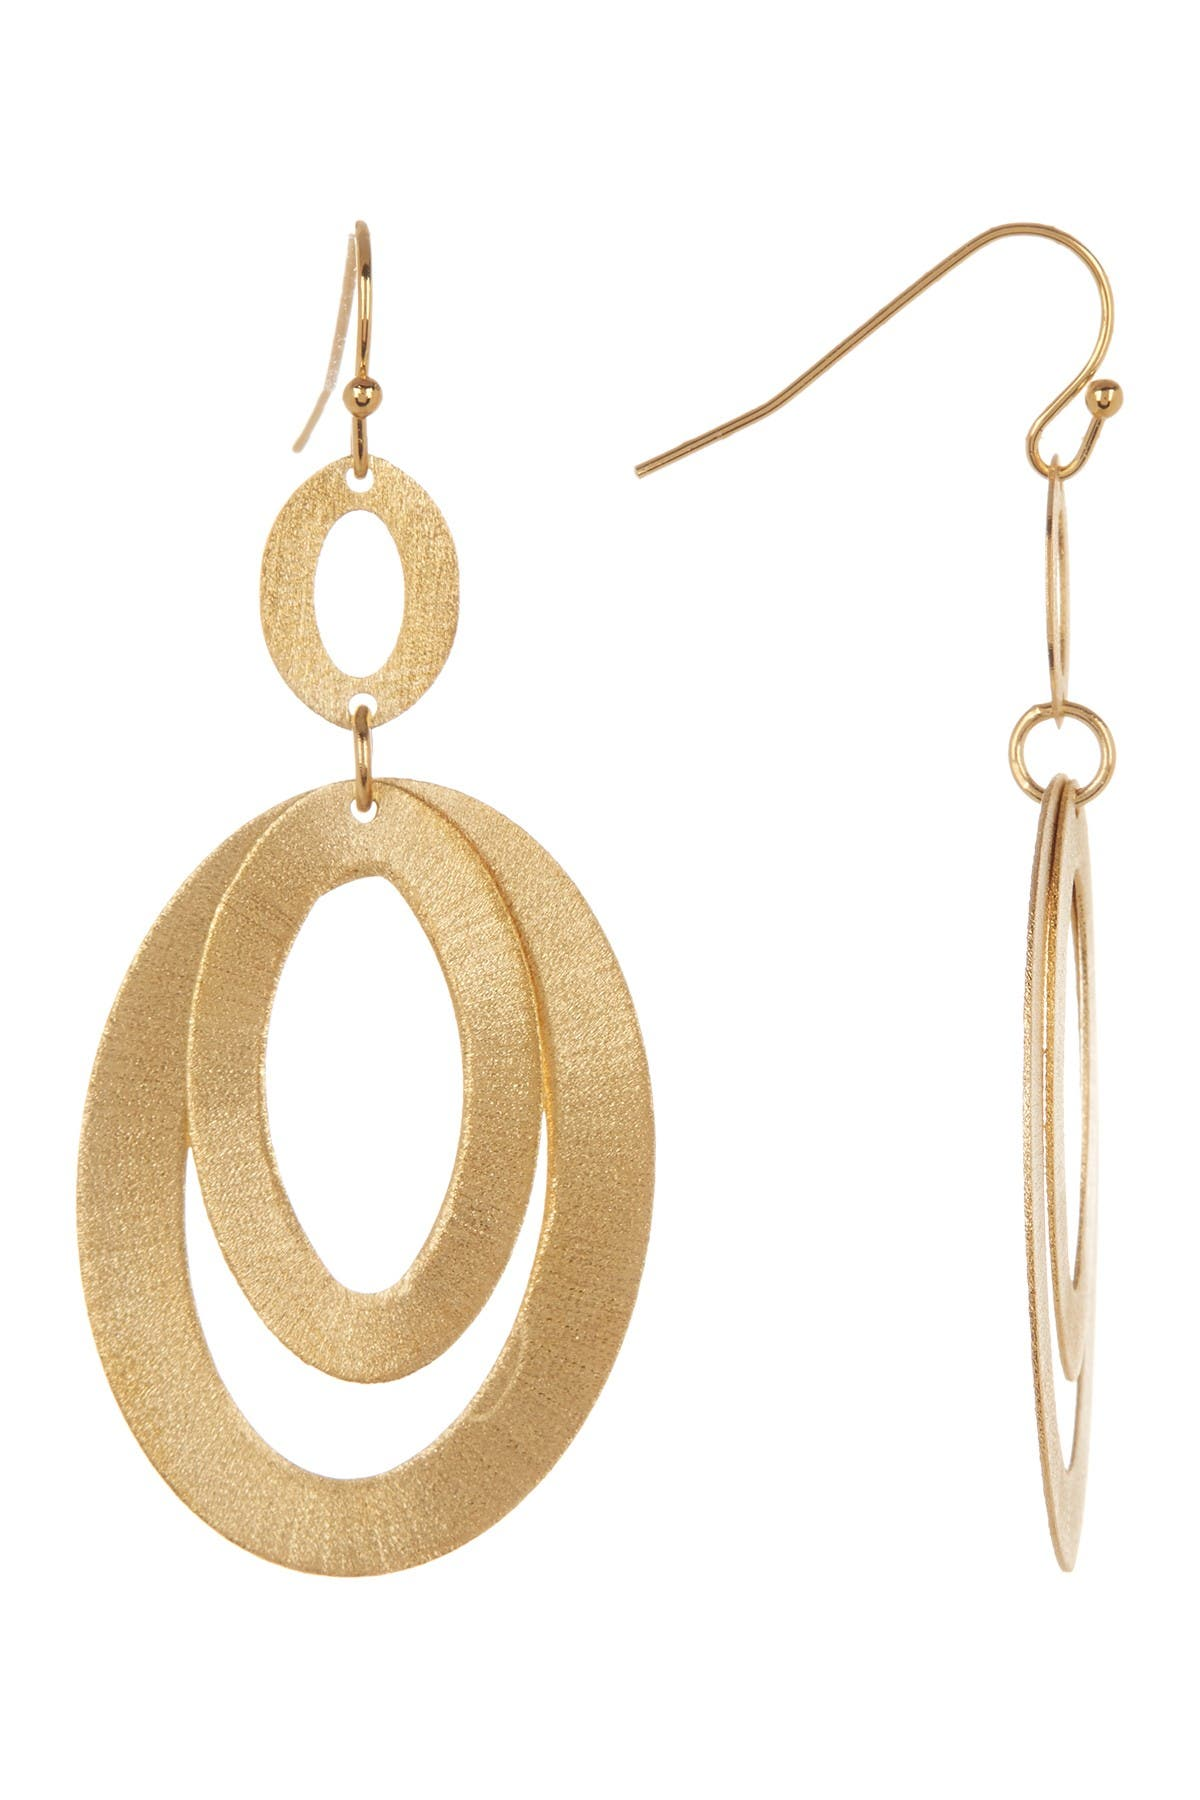 Image of Rivka Friedman 18K Gold Clad Layered Textured Oval Link Earrings